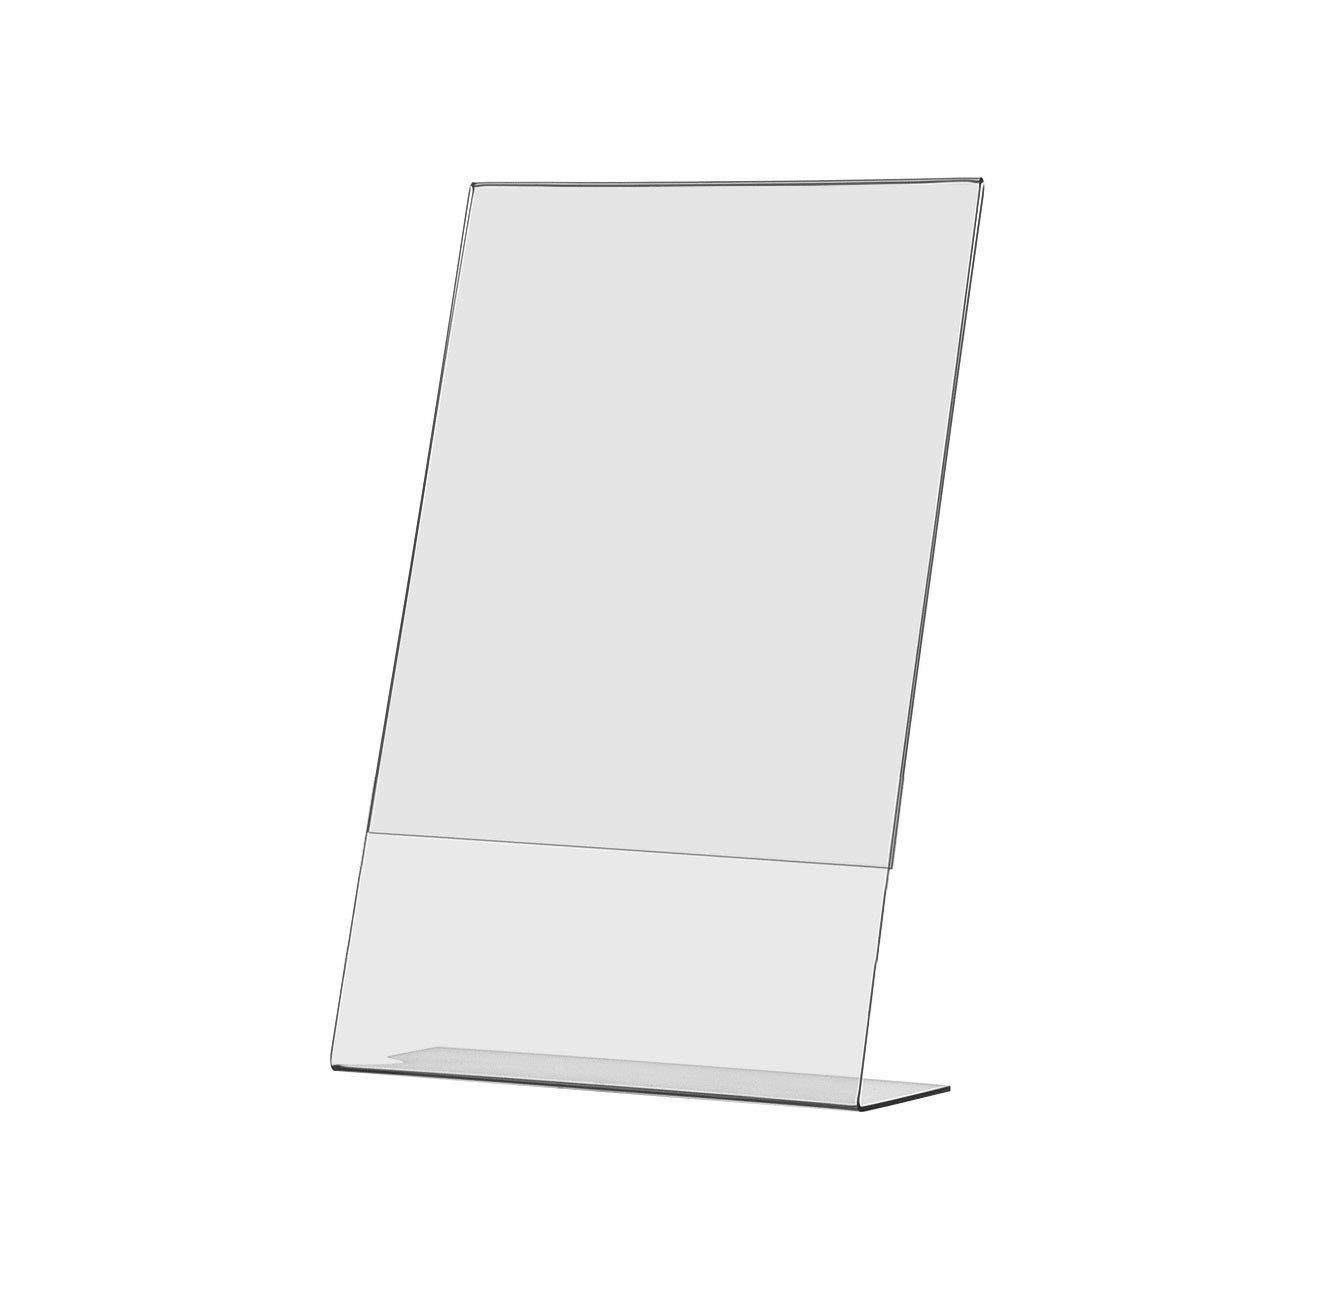 Marketing Holders Sign Holder 8.5''w x 14''h Table Top Side Loading Slant Back Lot of 10 by Marketing Holders